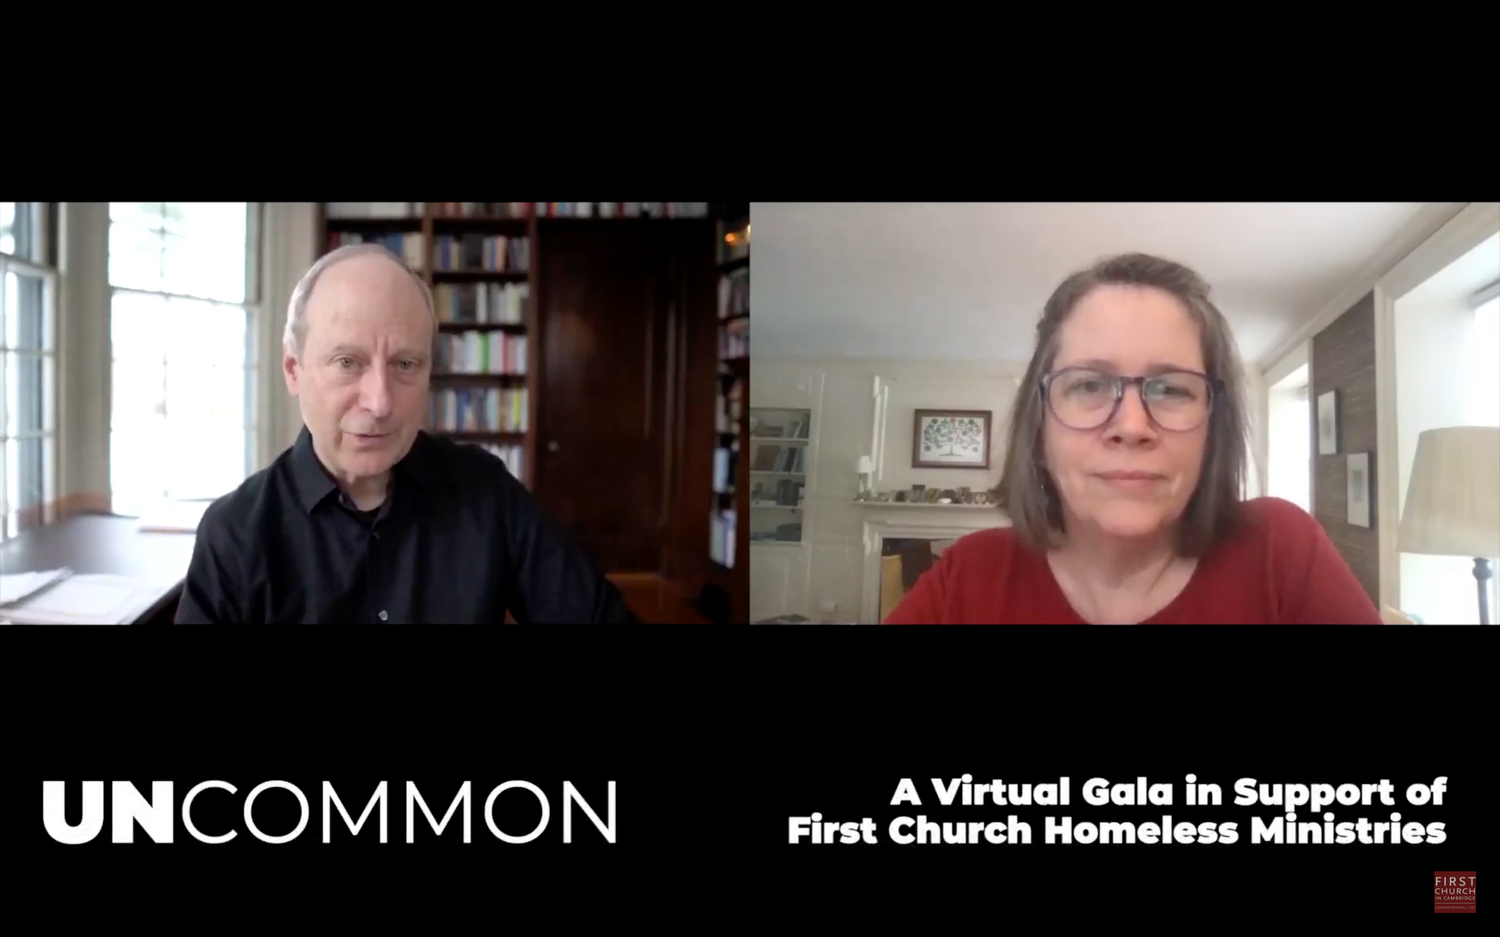 Harvard Government professor Michael J. Sandel, left, spoke at a fundraiser benefitting homeless programs at the First Church in Cambridge. Sandel was interviewed by Divinity School professor and Interim Minister of Memorial ChurchStephanie A. Paulsell.